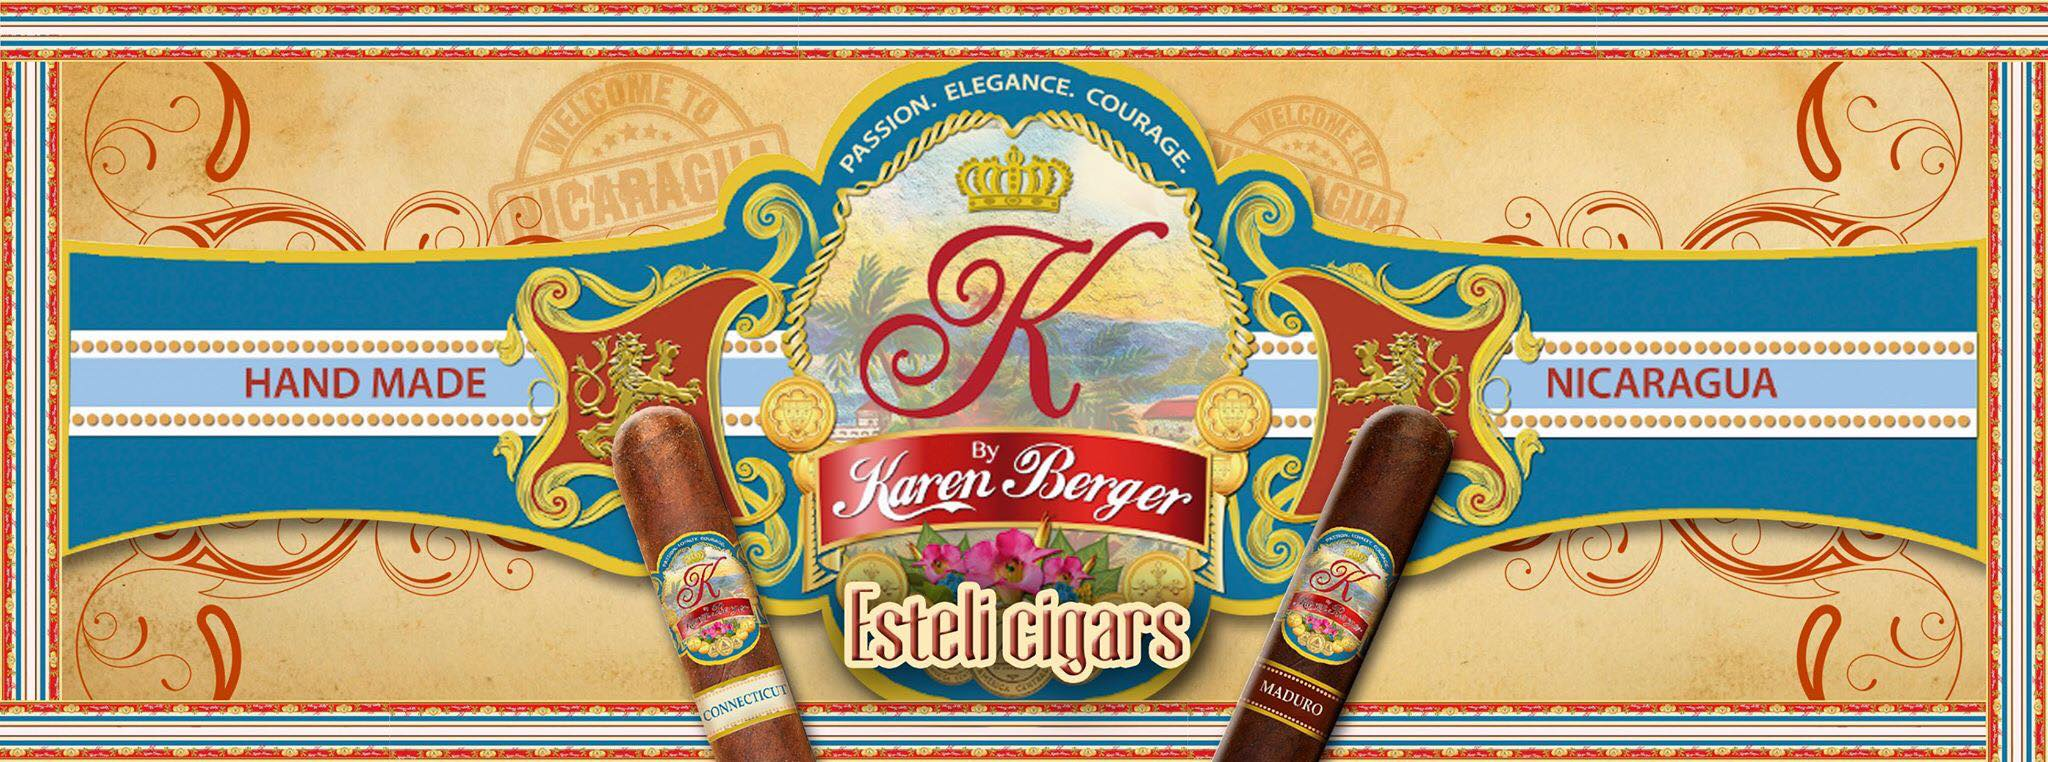 k by Karen Berger Cigars